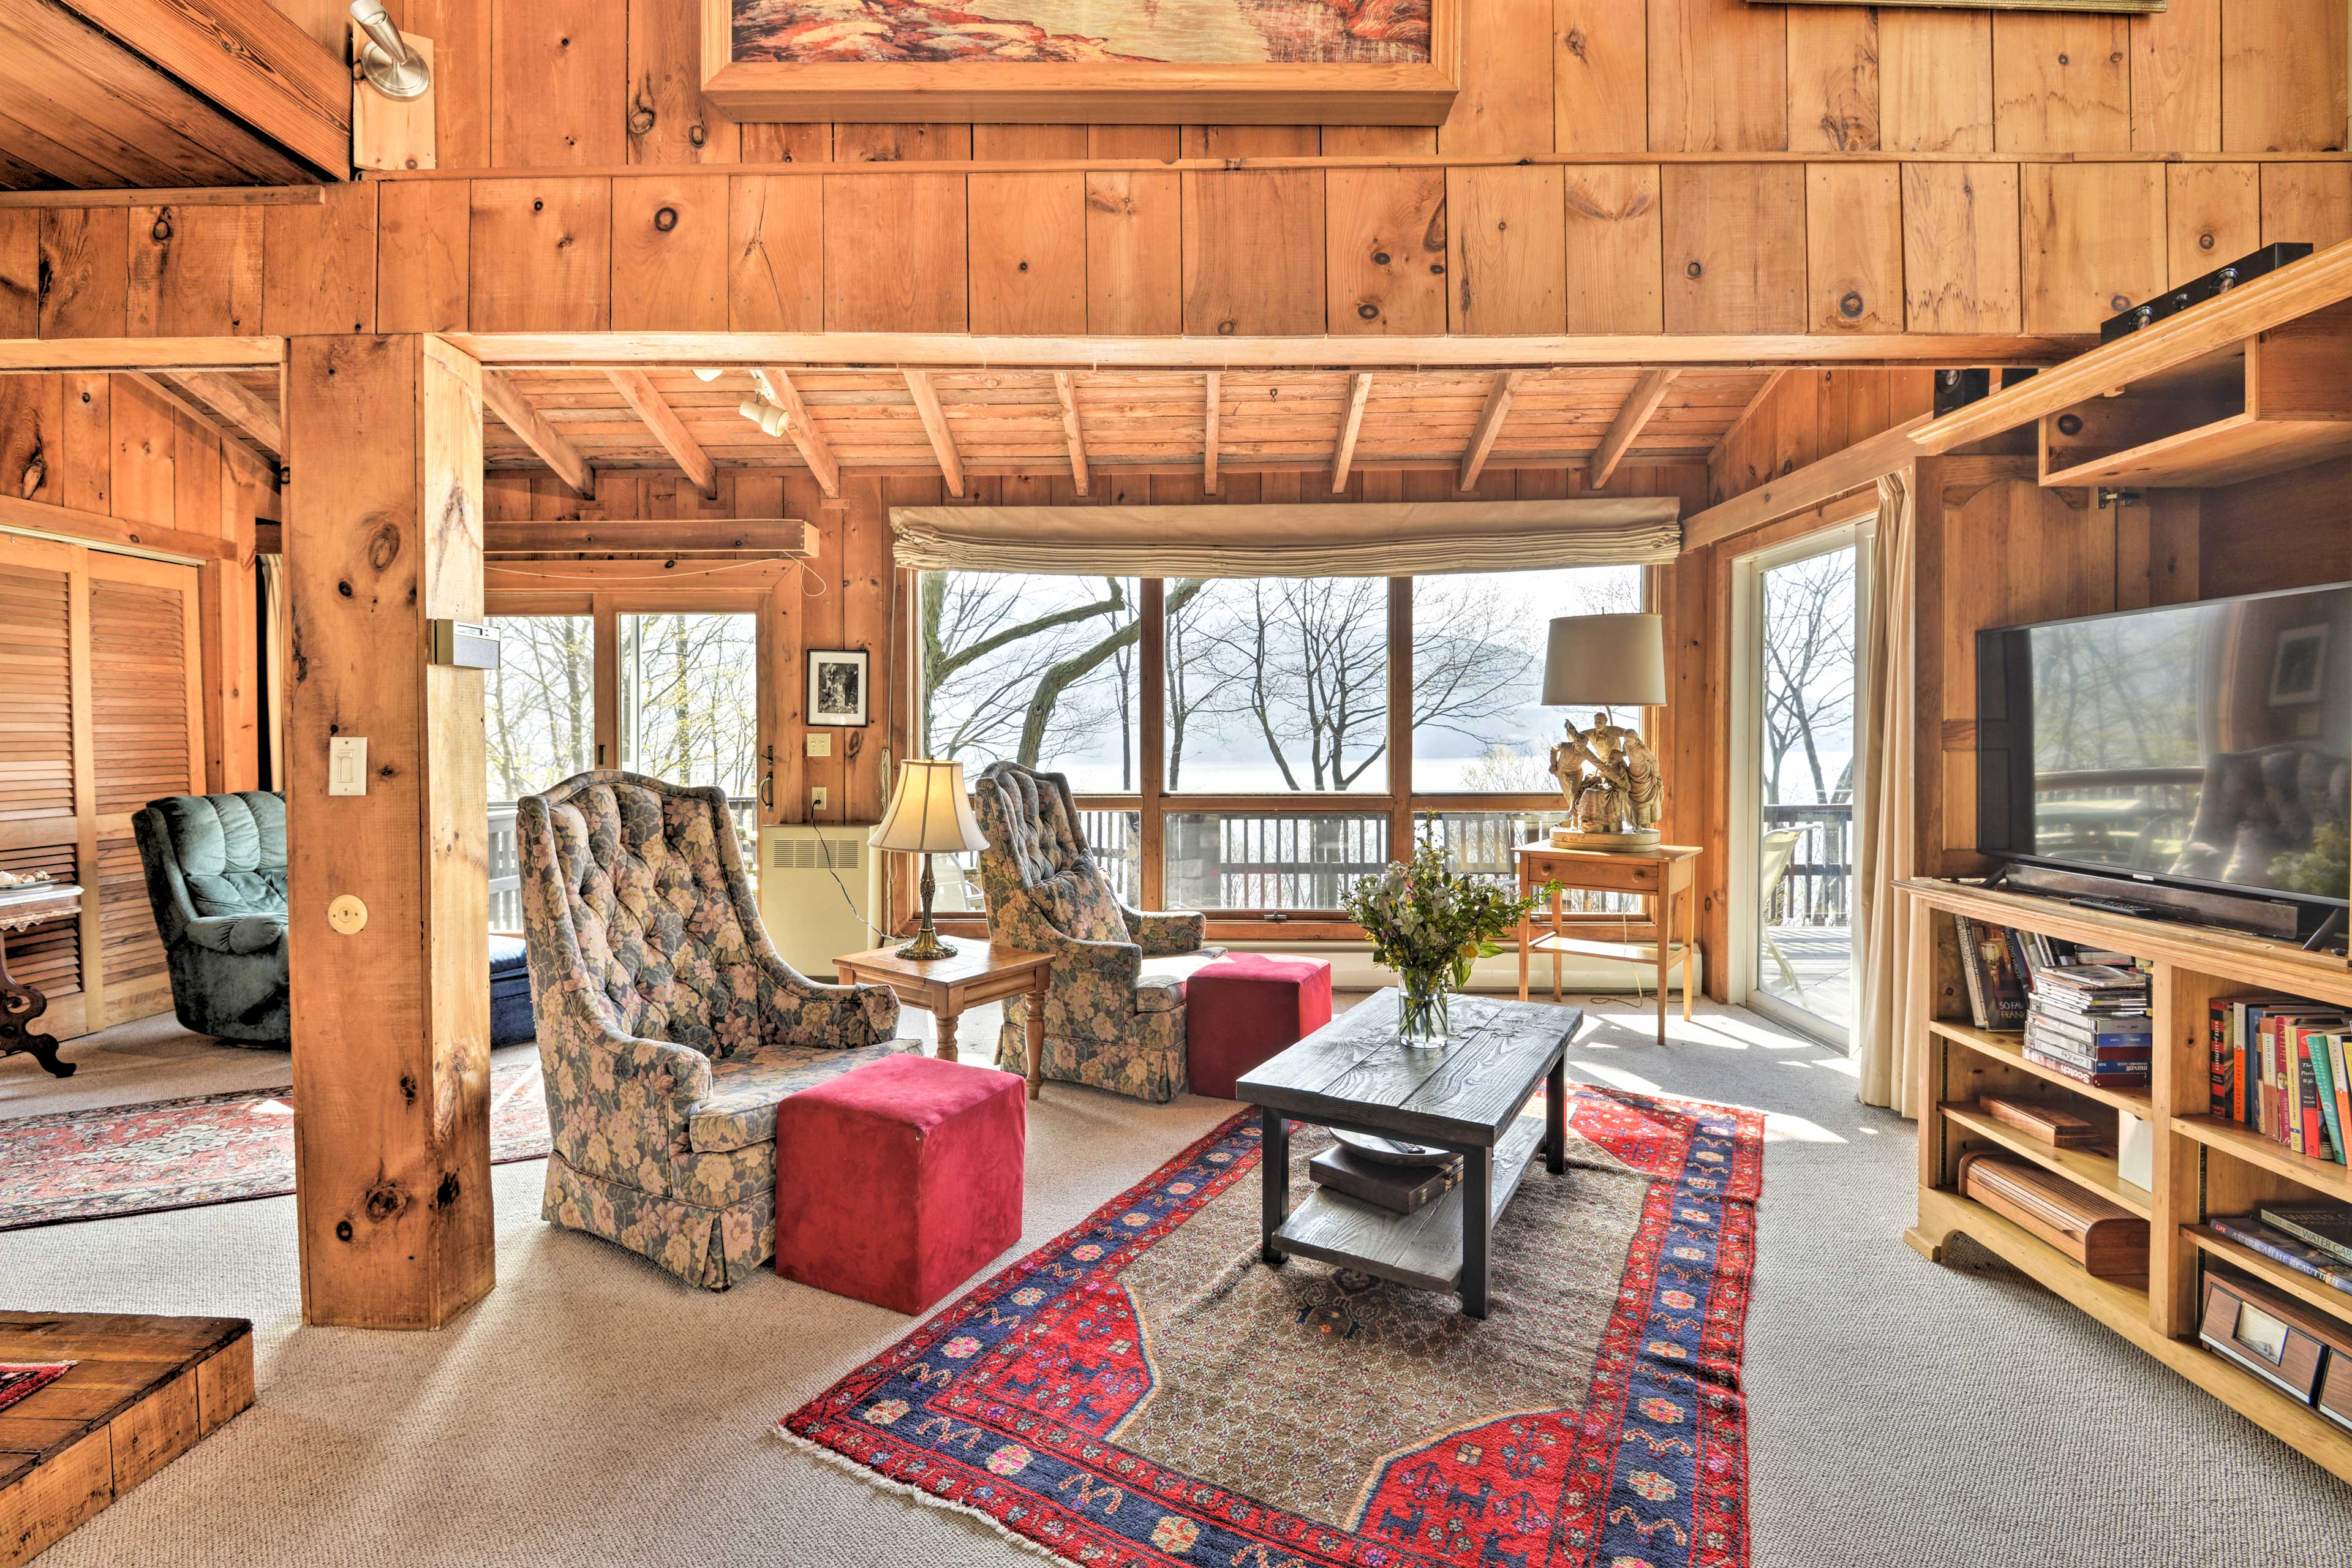 This 3-bed, 2-bath home is located on the shore of Skaneateles Lake.